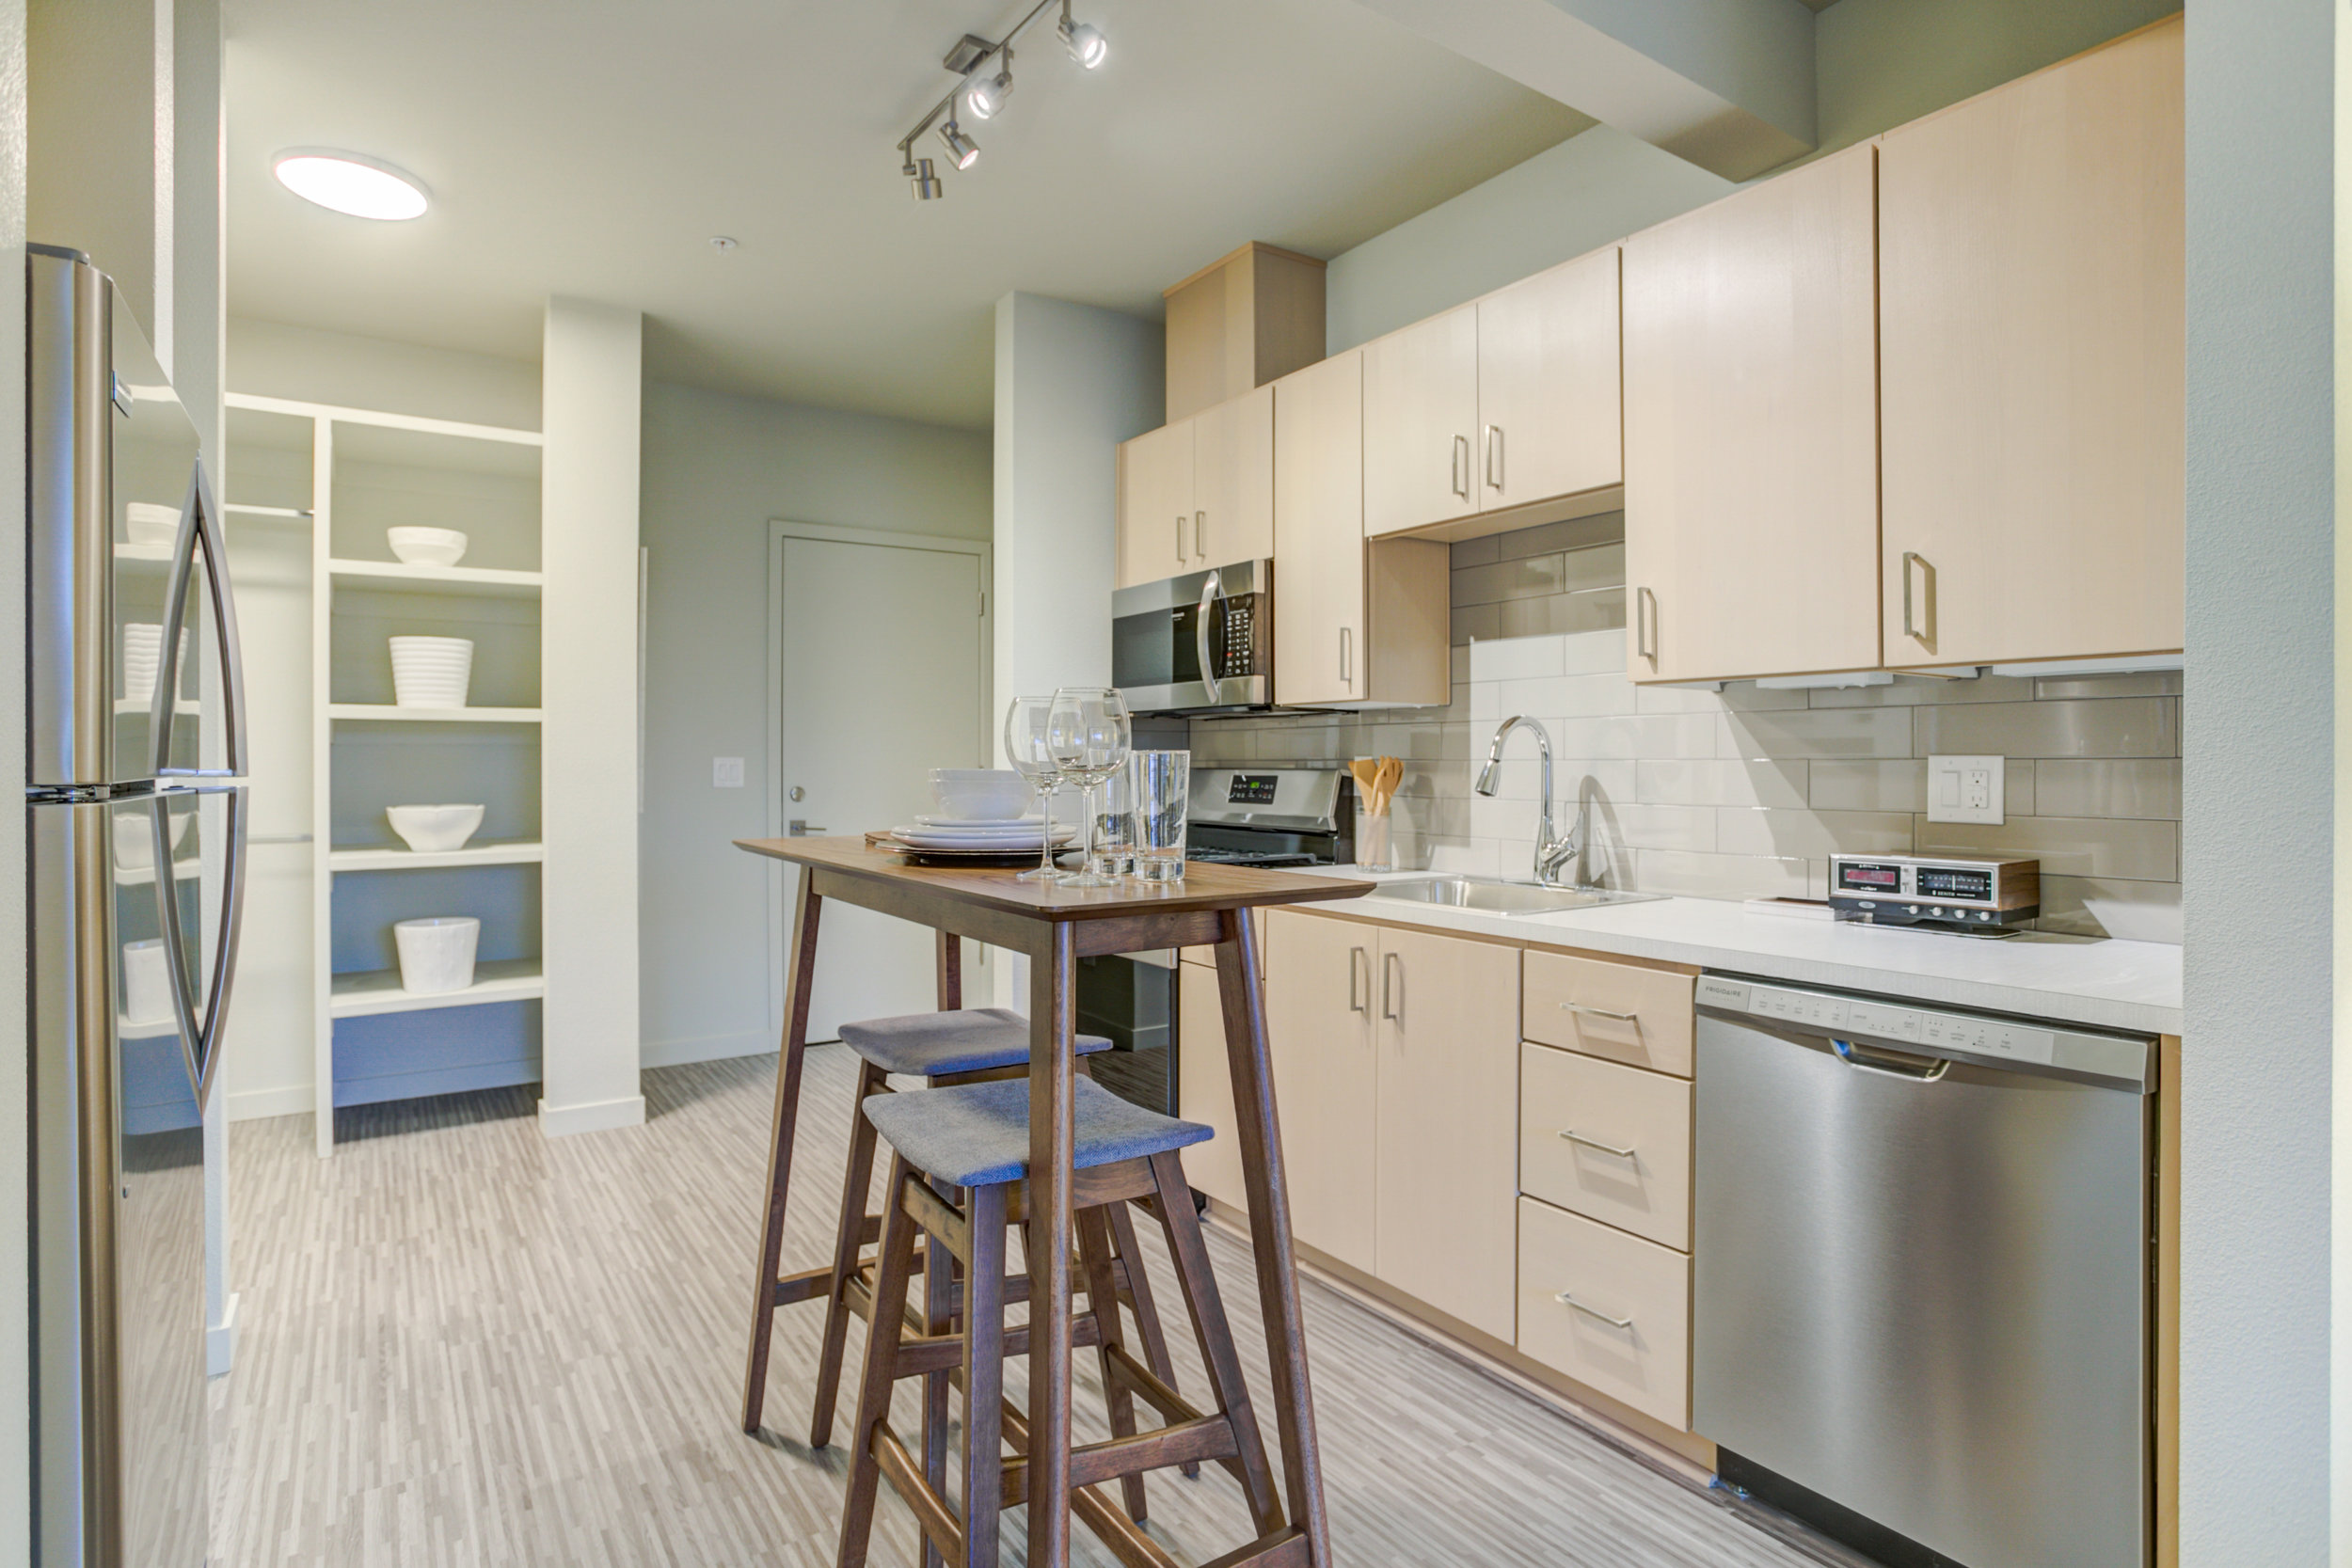 Soft Close Cabinetry -